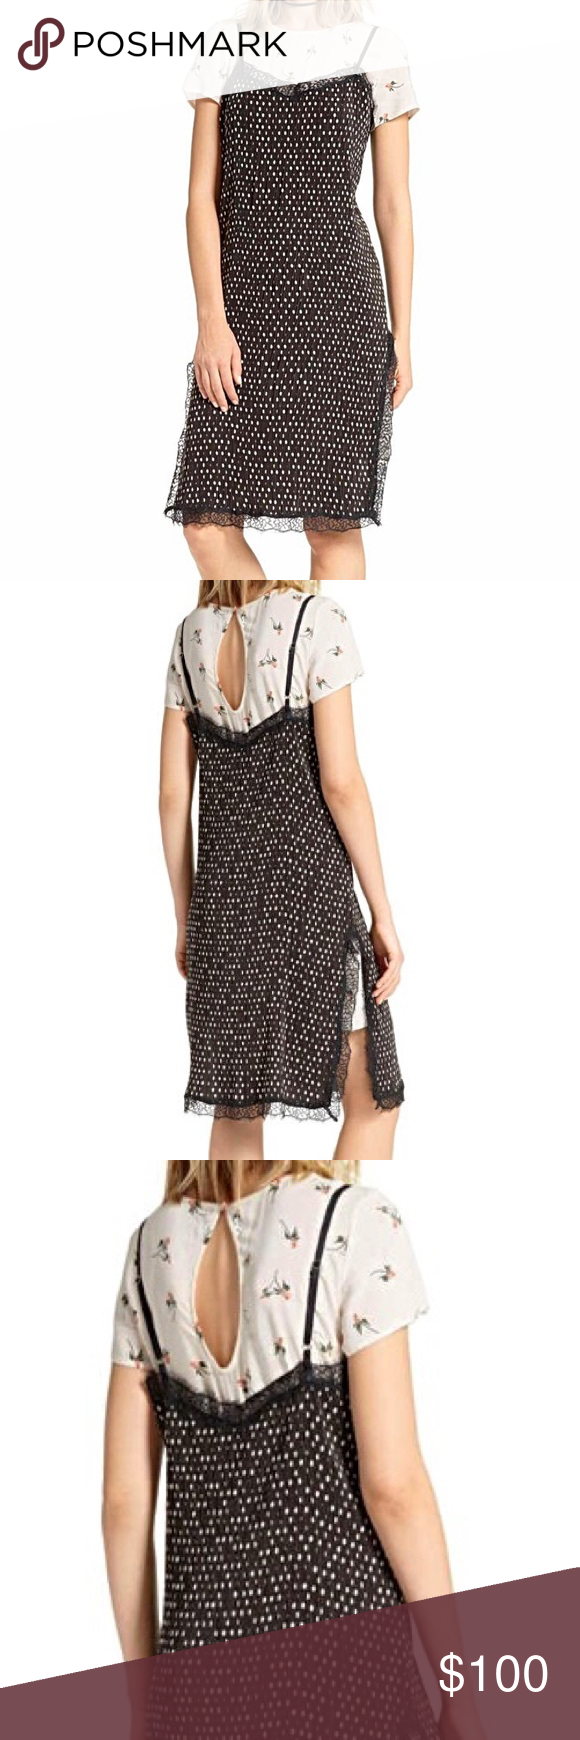 9788f781fffe NWT FREE PEOPLE Black Slip Dress. 2 in 1 Adorable Free People black polka  dot slip dress. It has a white floral under dress with keyhole back closer.